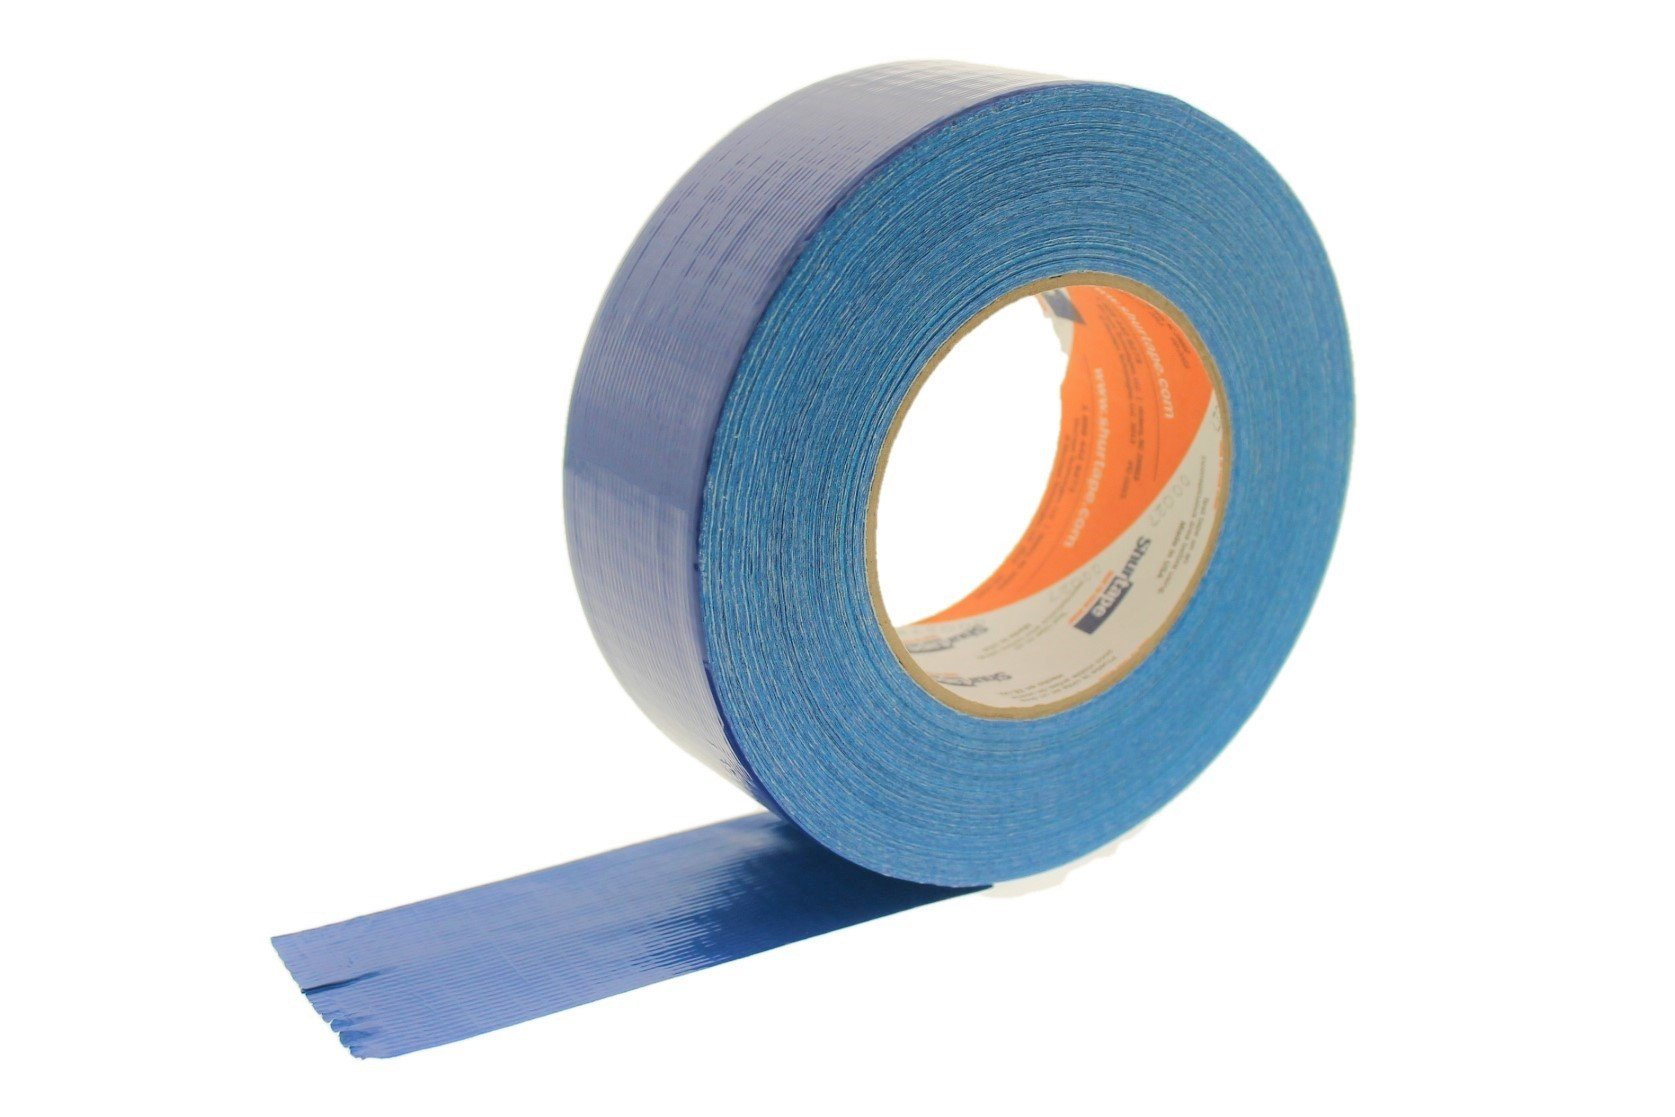 PC-600 Shurtape 2'' Navy Blue 9 Mil Cloth Duct Tape Waterproof Hand Tearable UV Resistant High Visibility Industrial Grade Heavy Duty Pro Colored Duct Tape Colors USA Made 60yd